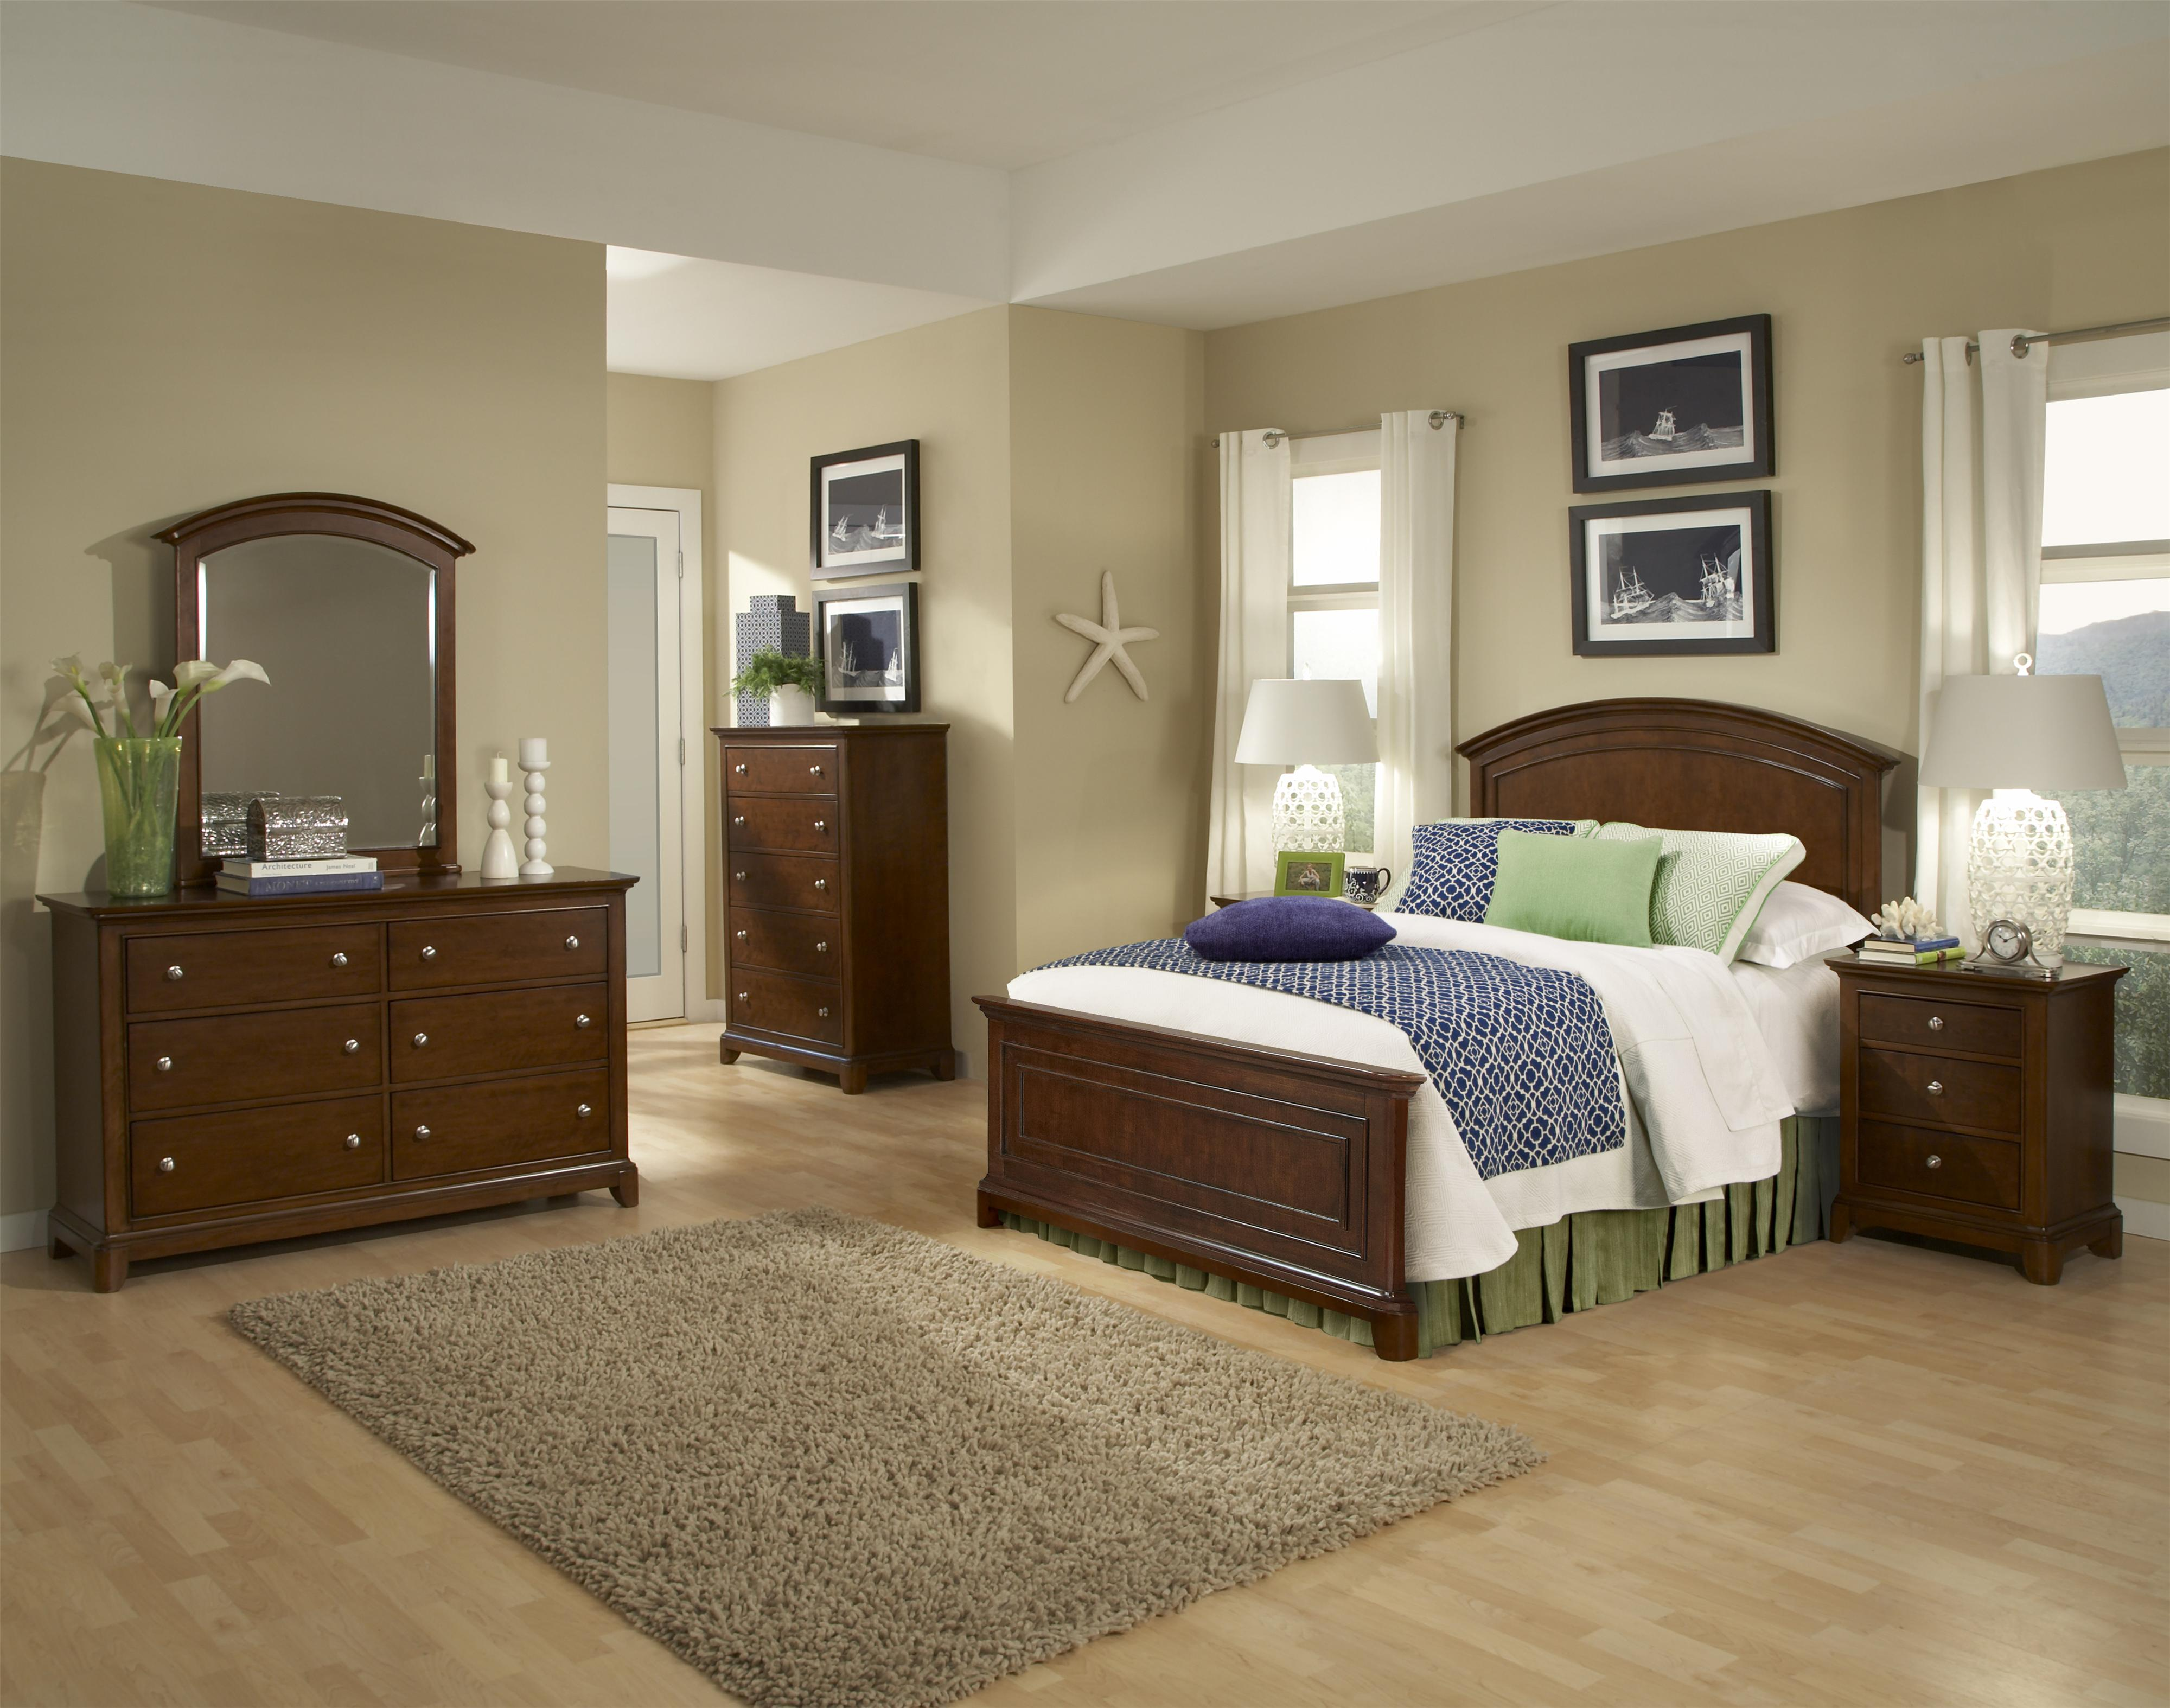 Legacy Classic Kids Impressions Full Bedroom Group - Item Number: 2880 F Bedroom Group 6